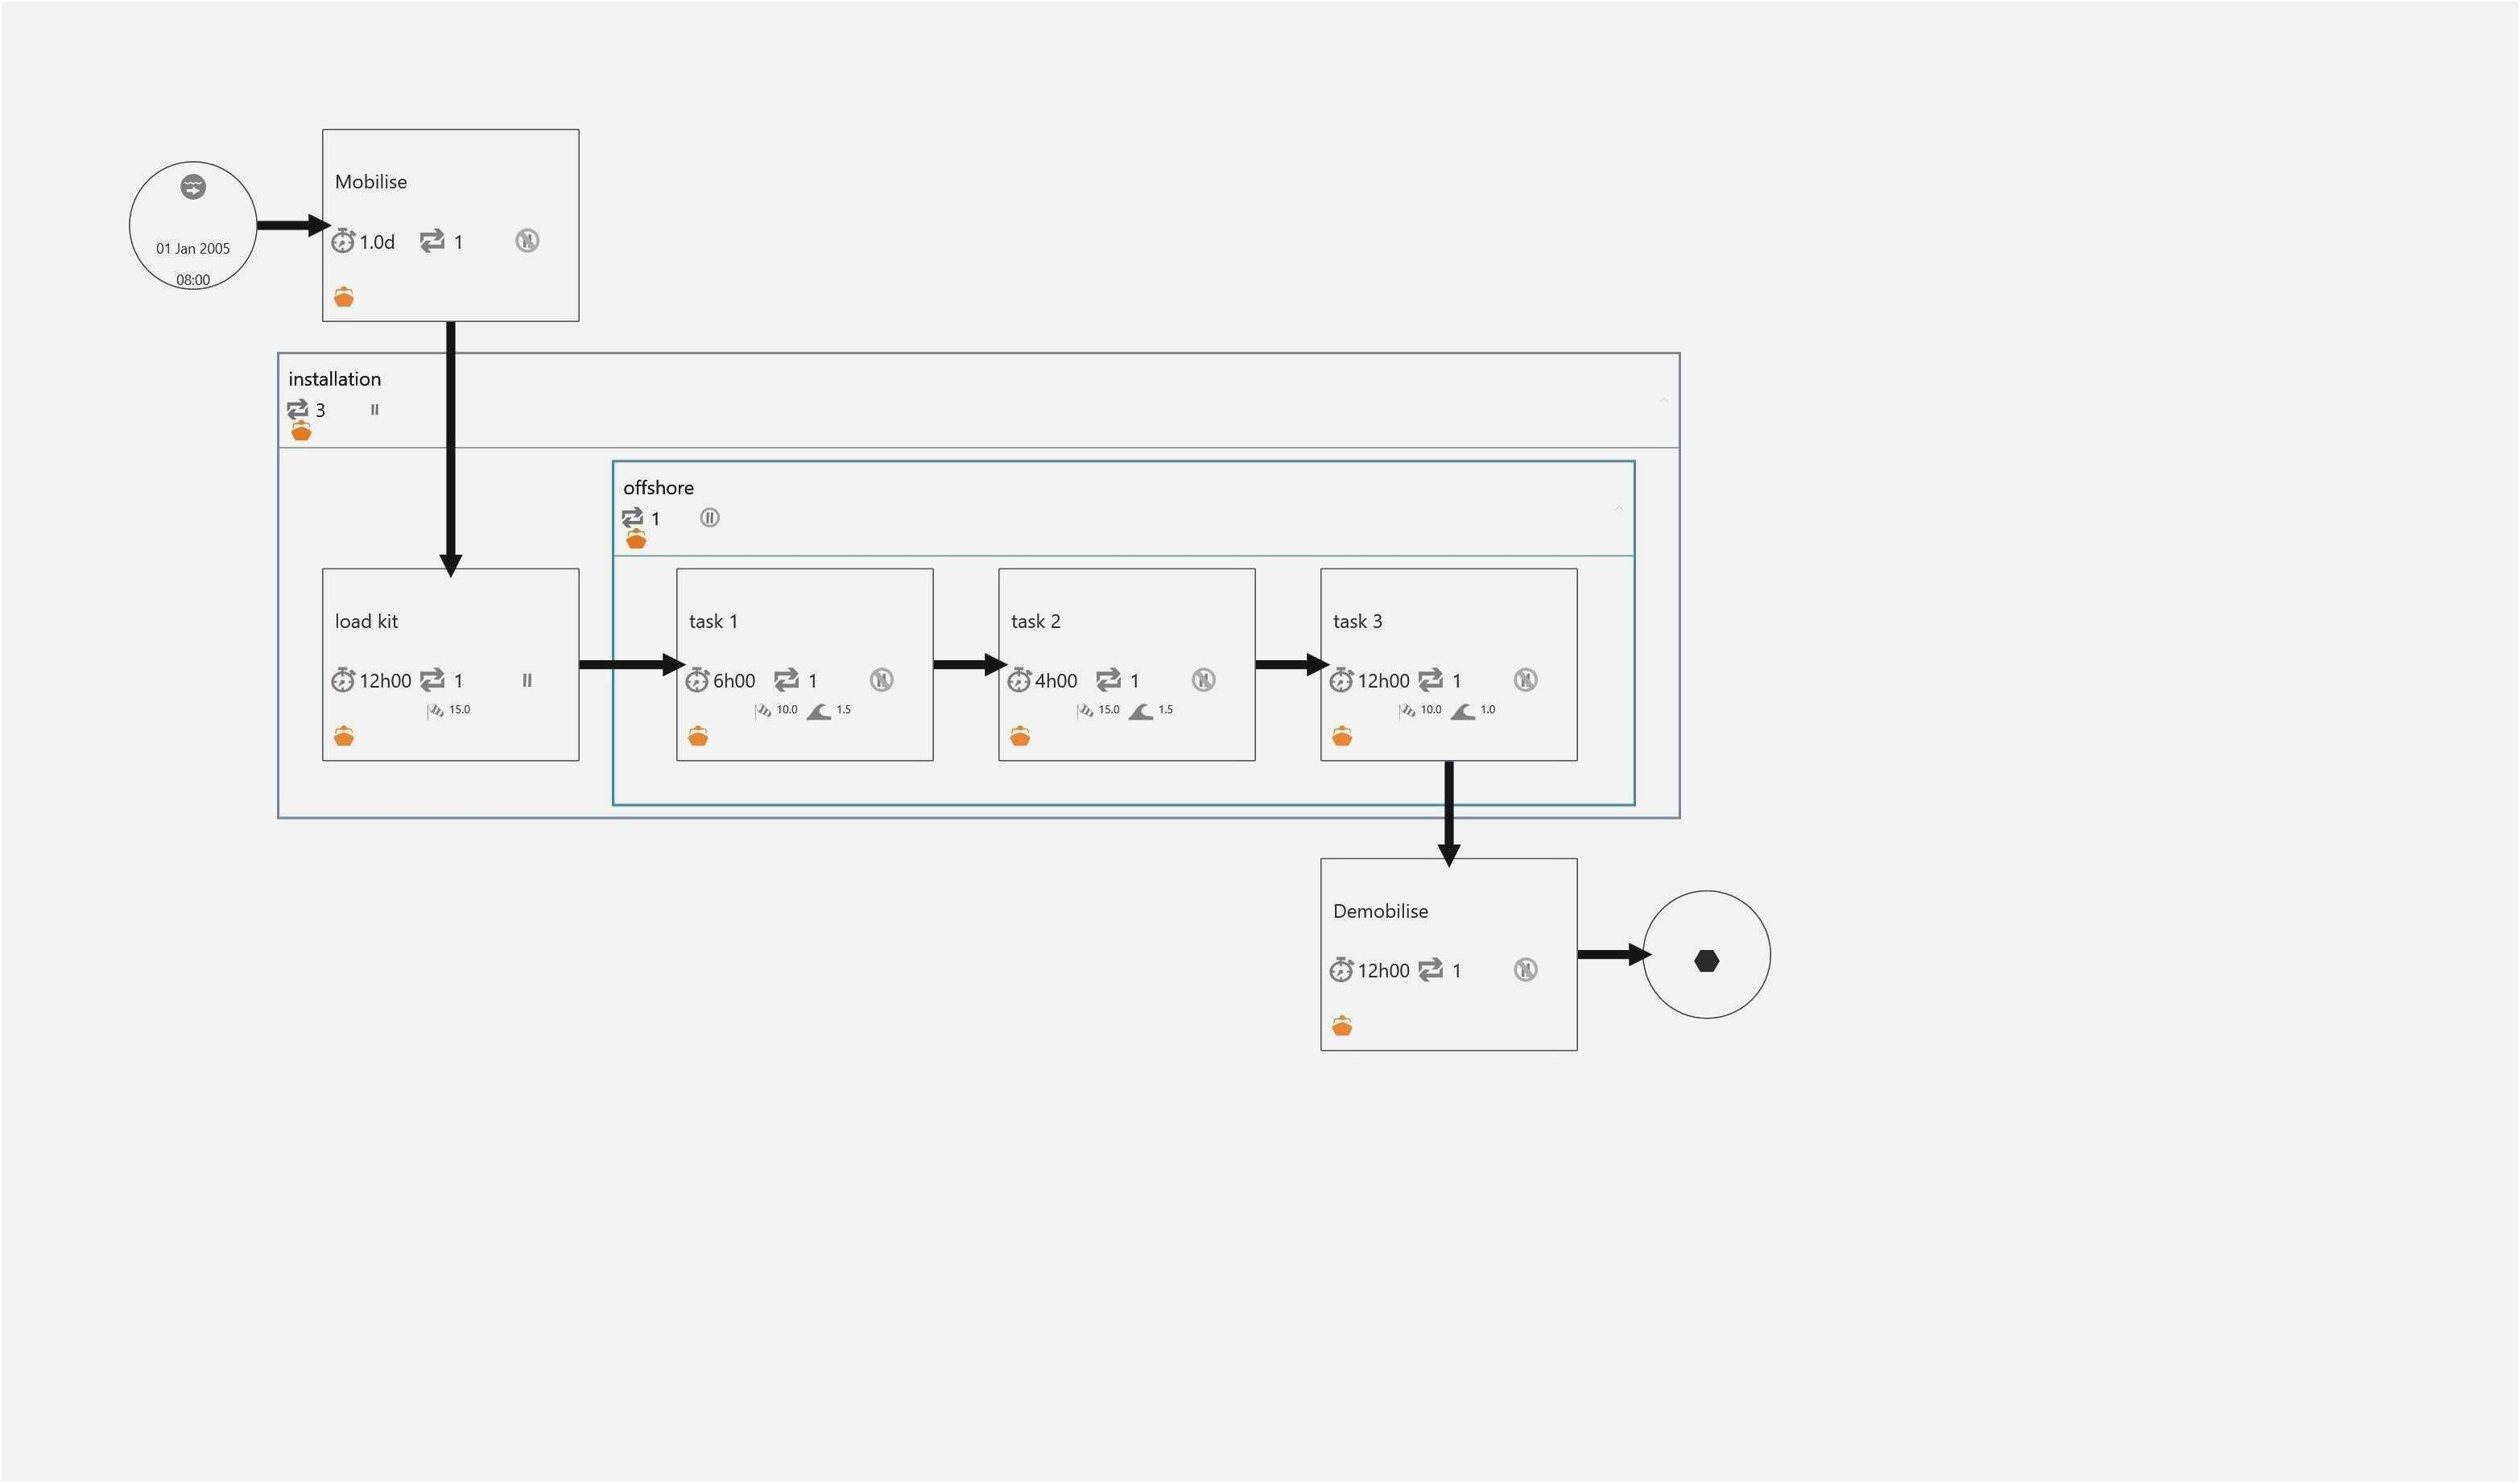 free download wiring diagram data flowiagram examples and templates lucidchart 2019 jpg